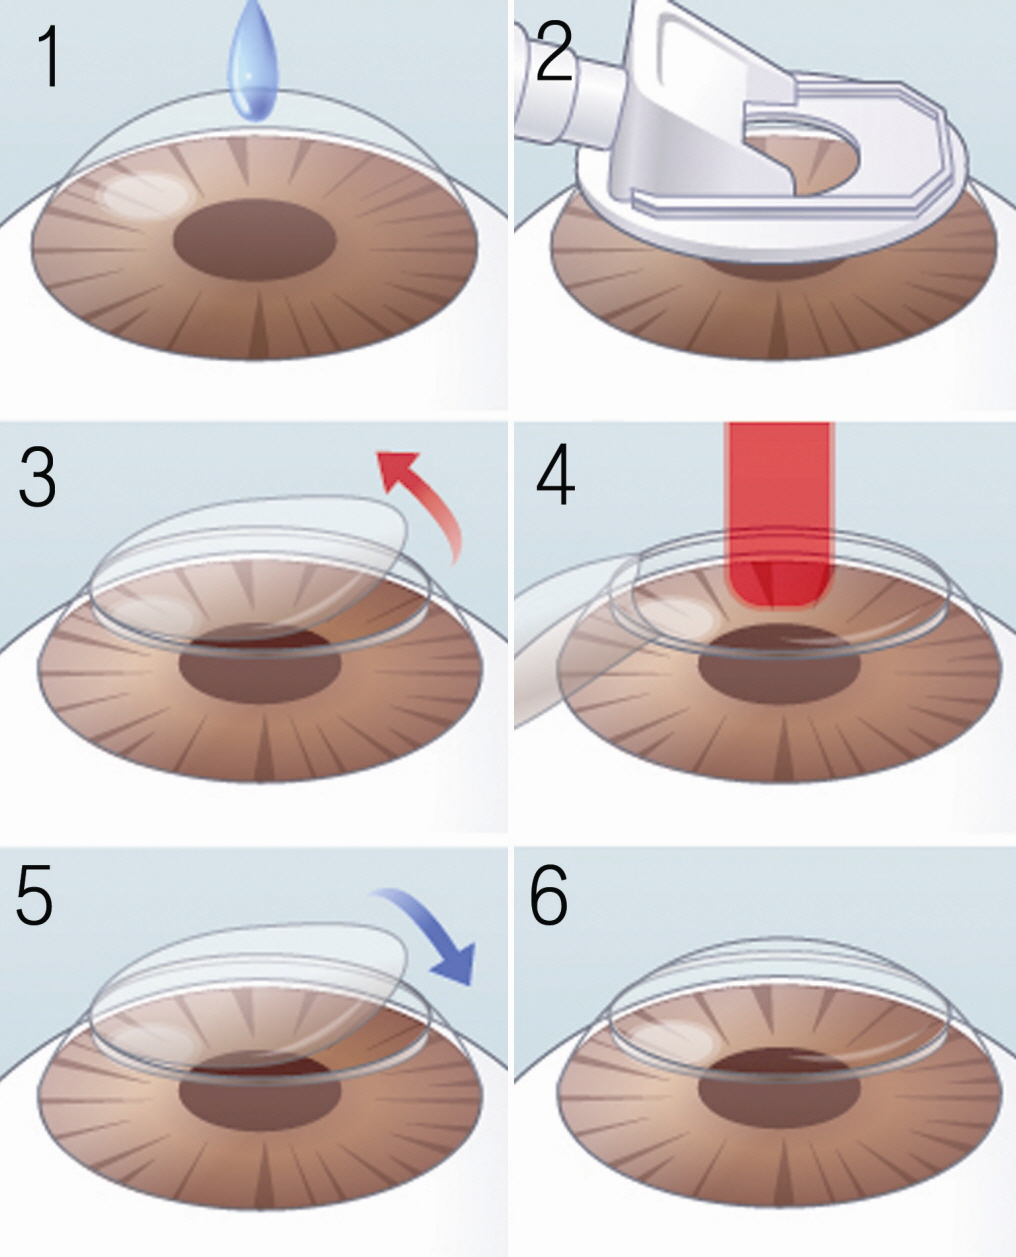 Do you know about LASIK, LASEK and Lens Implant Surgery?